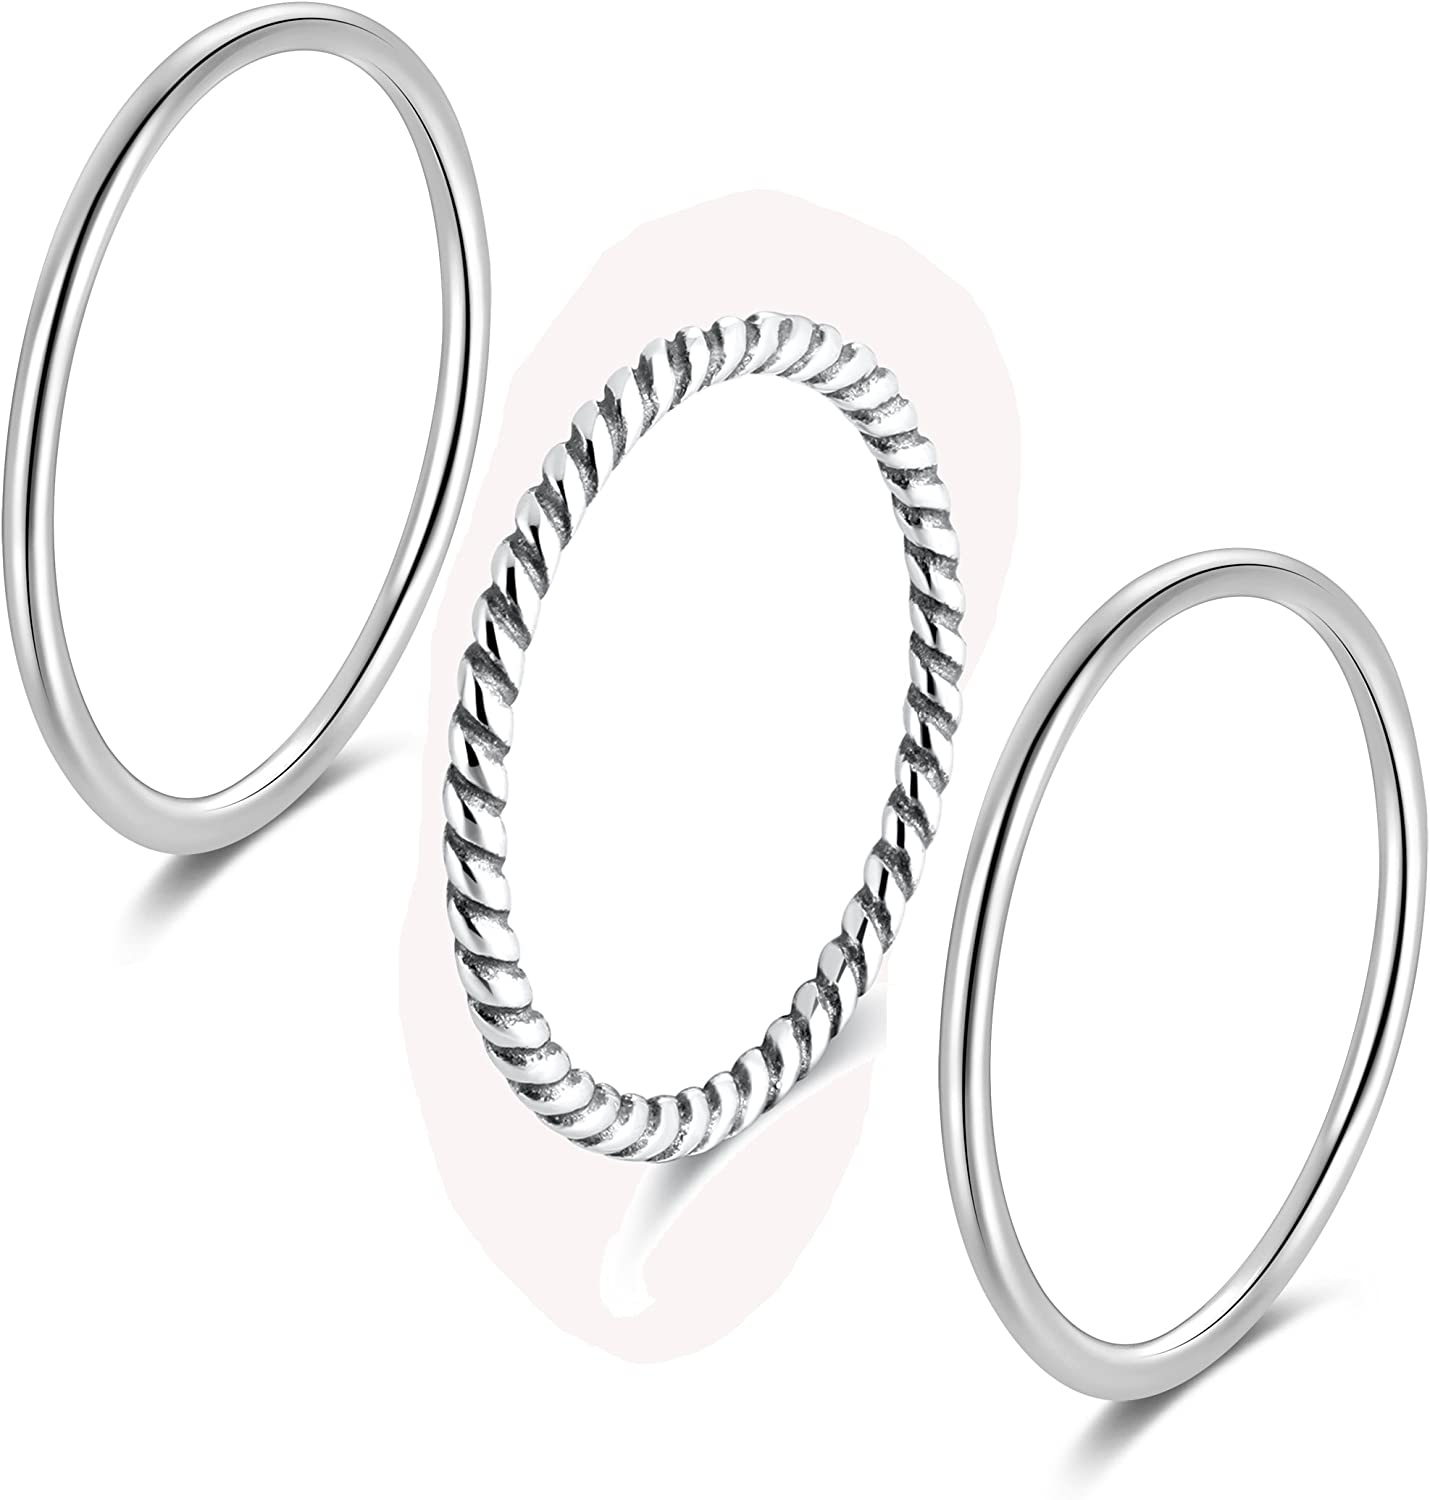 SILBERTALE 925 Sterling Silver Stacking Minimalist Midi Above Knuckle Pinky Finger Rings Bands 3pcs Set